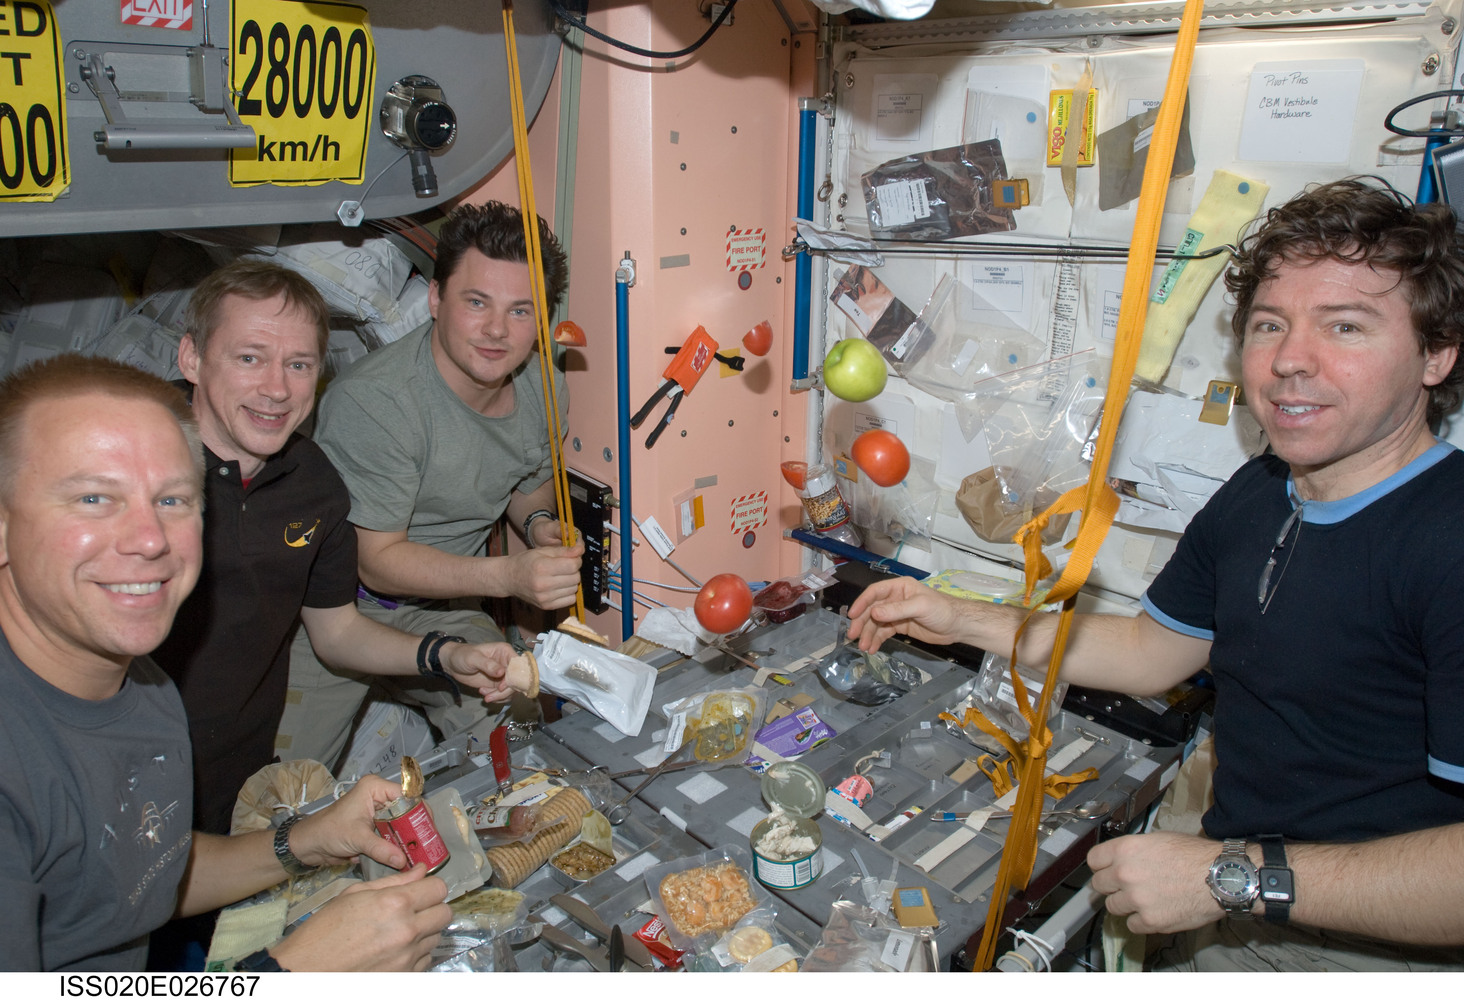 NASA astronaut Tim Kopra (left), European Space Agency astronaut Frank De Winne, cosmonaut Roman Romanenko and NASA astronaut Michael Barratt, all Expedition 20 flight engineers, share a meal at a galley in the Unity node of the International Space...